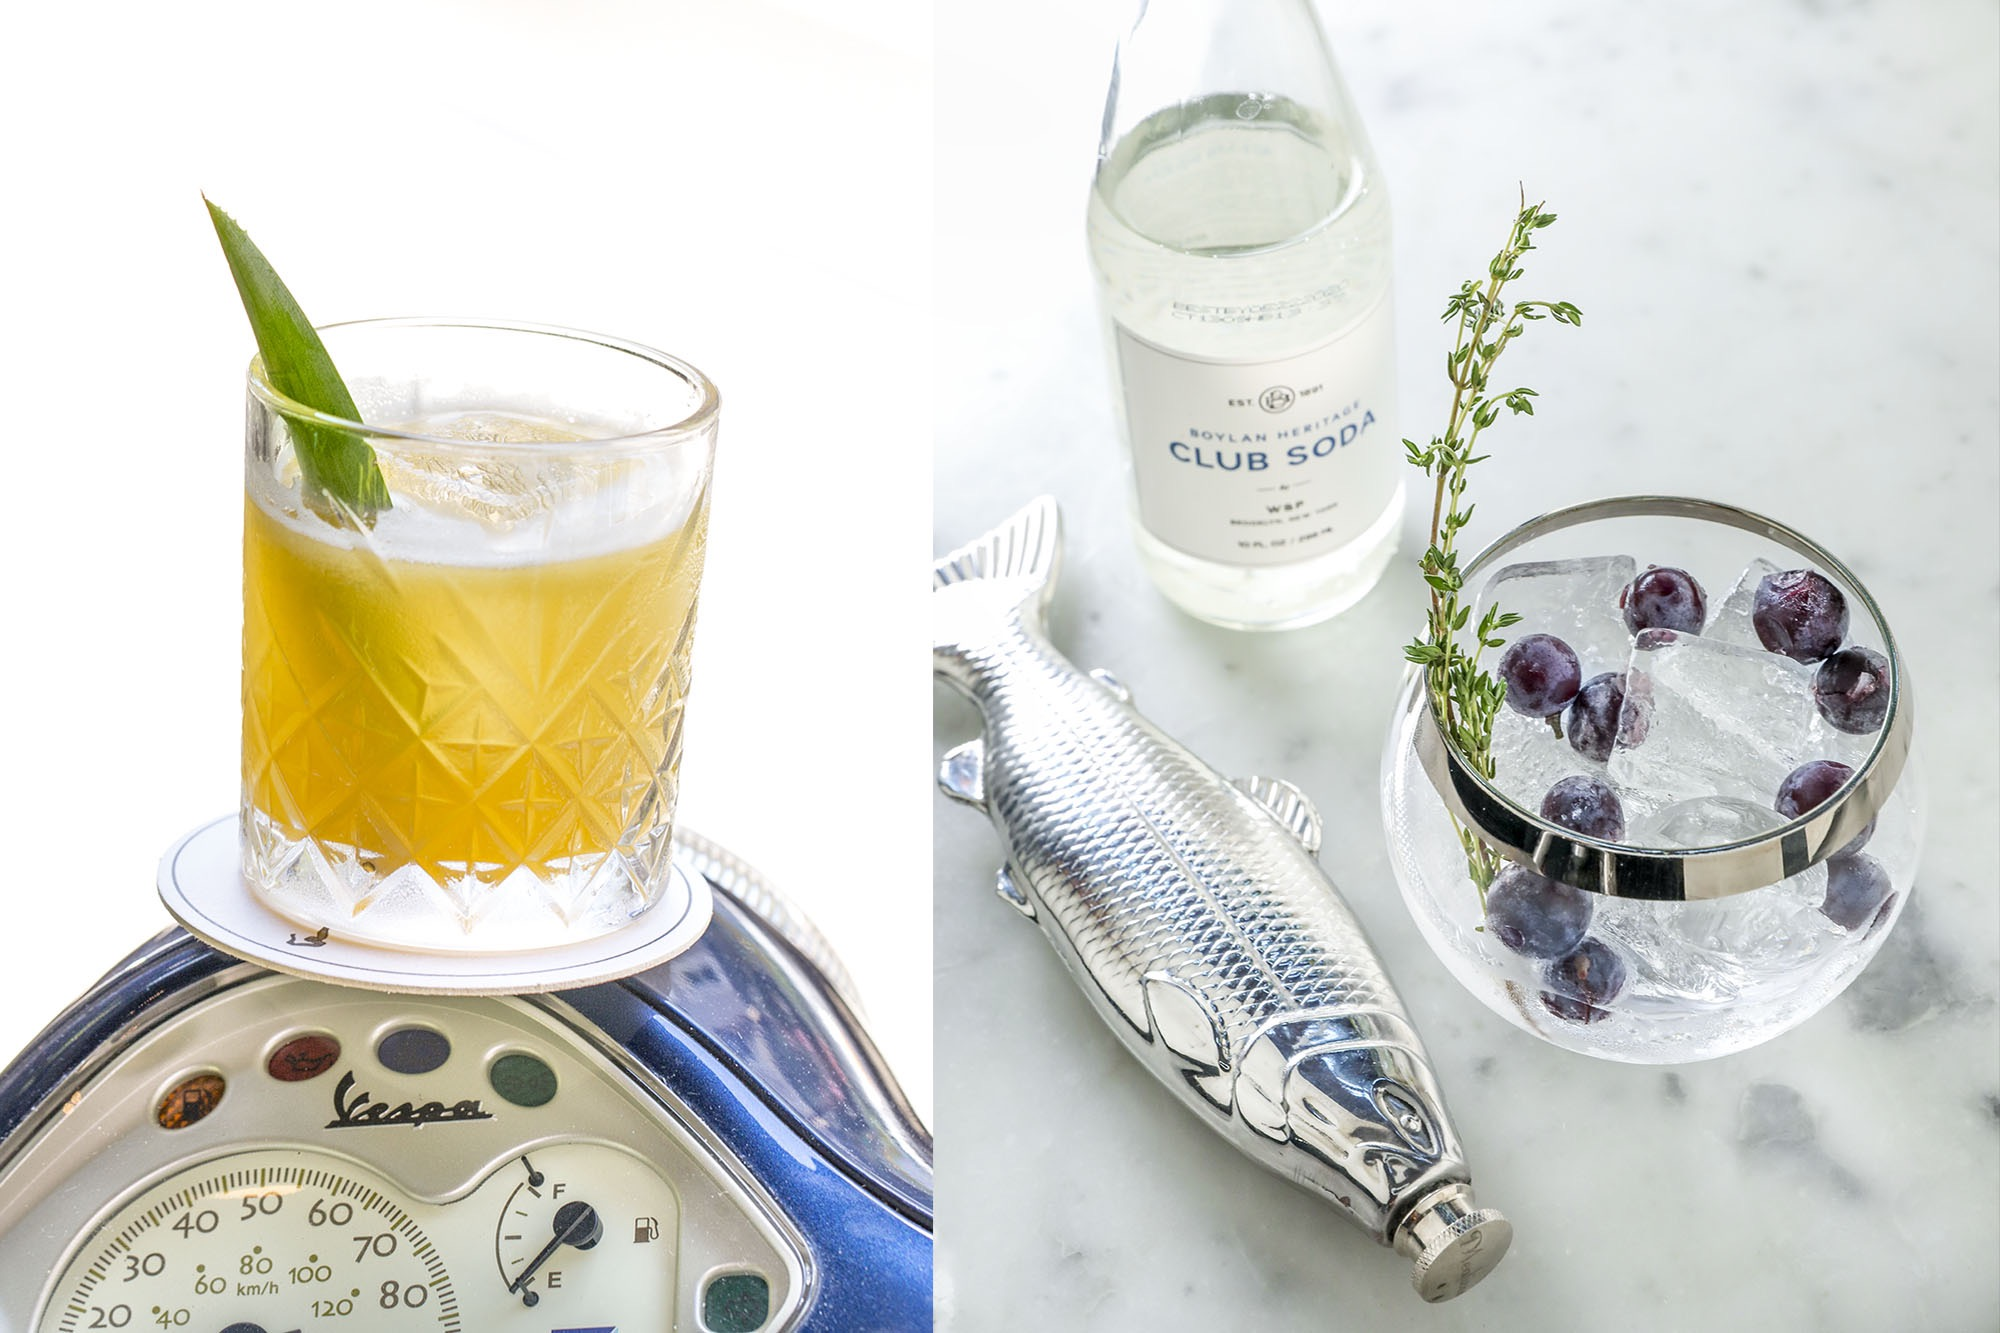 Drink with a fish flask and garnished with thyme